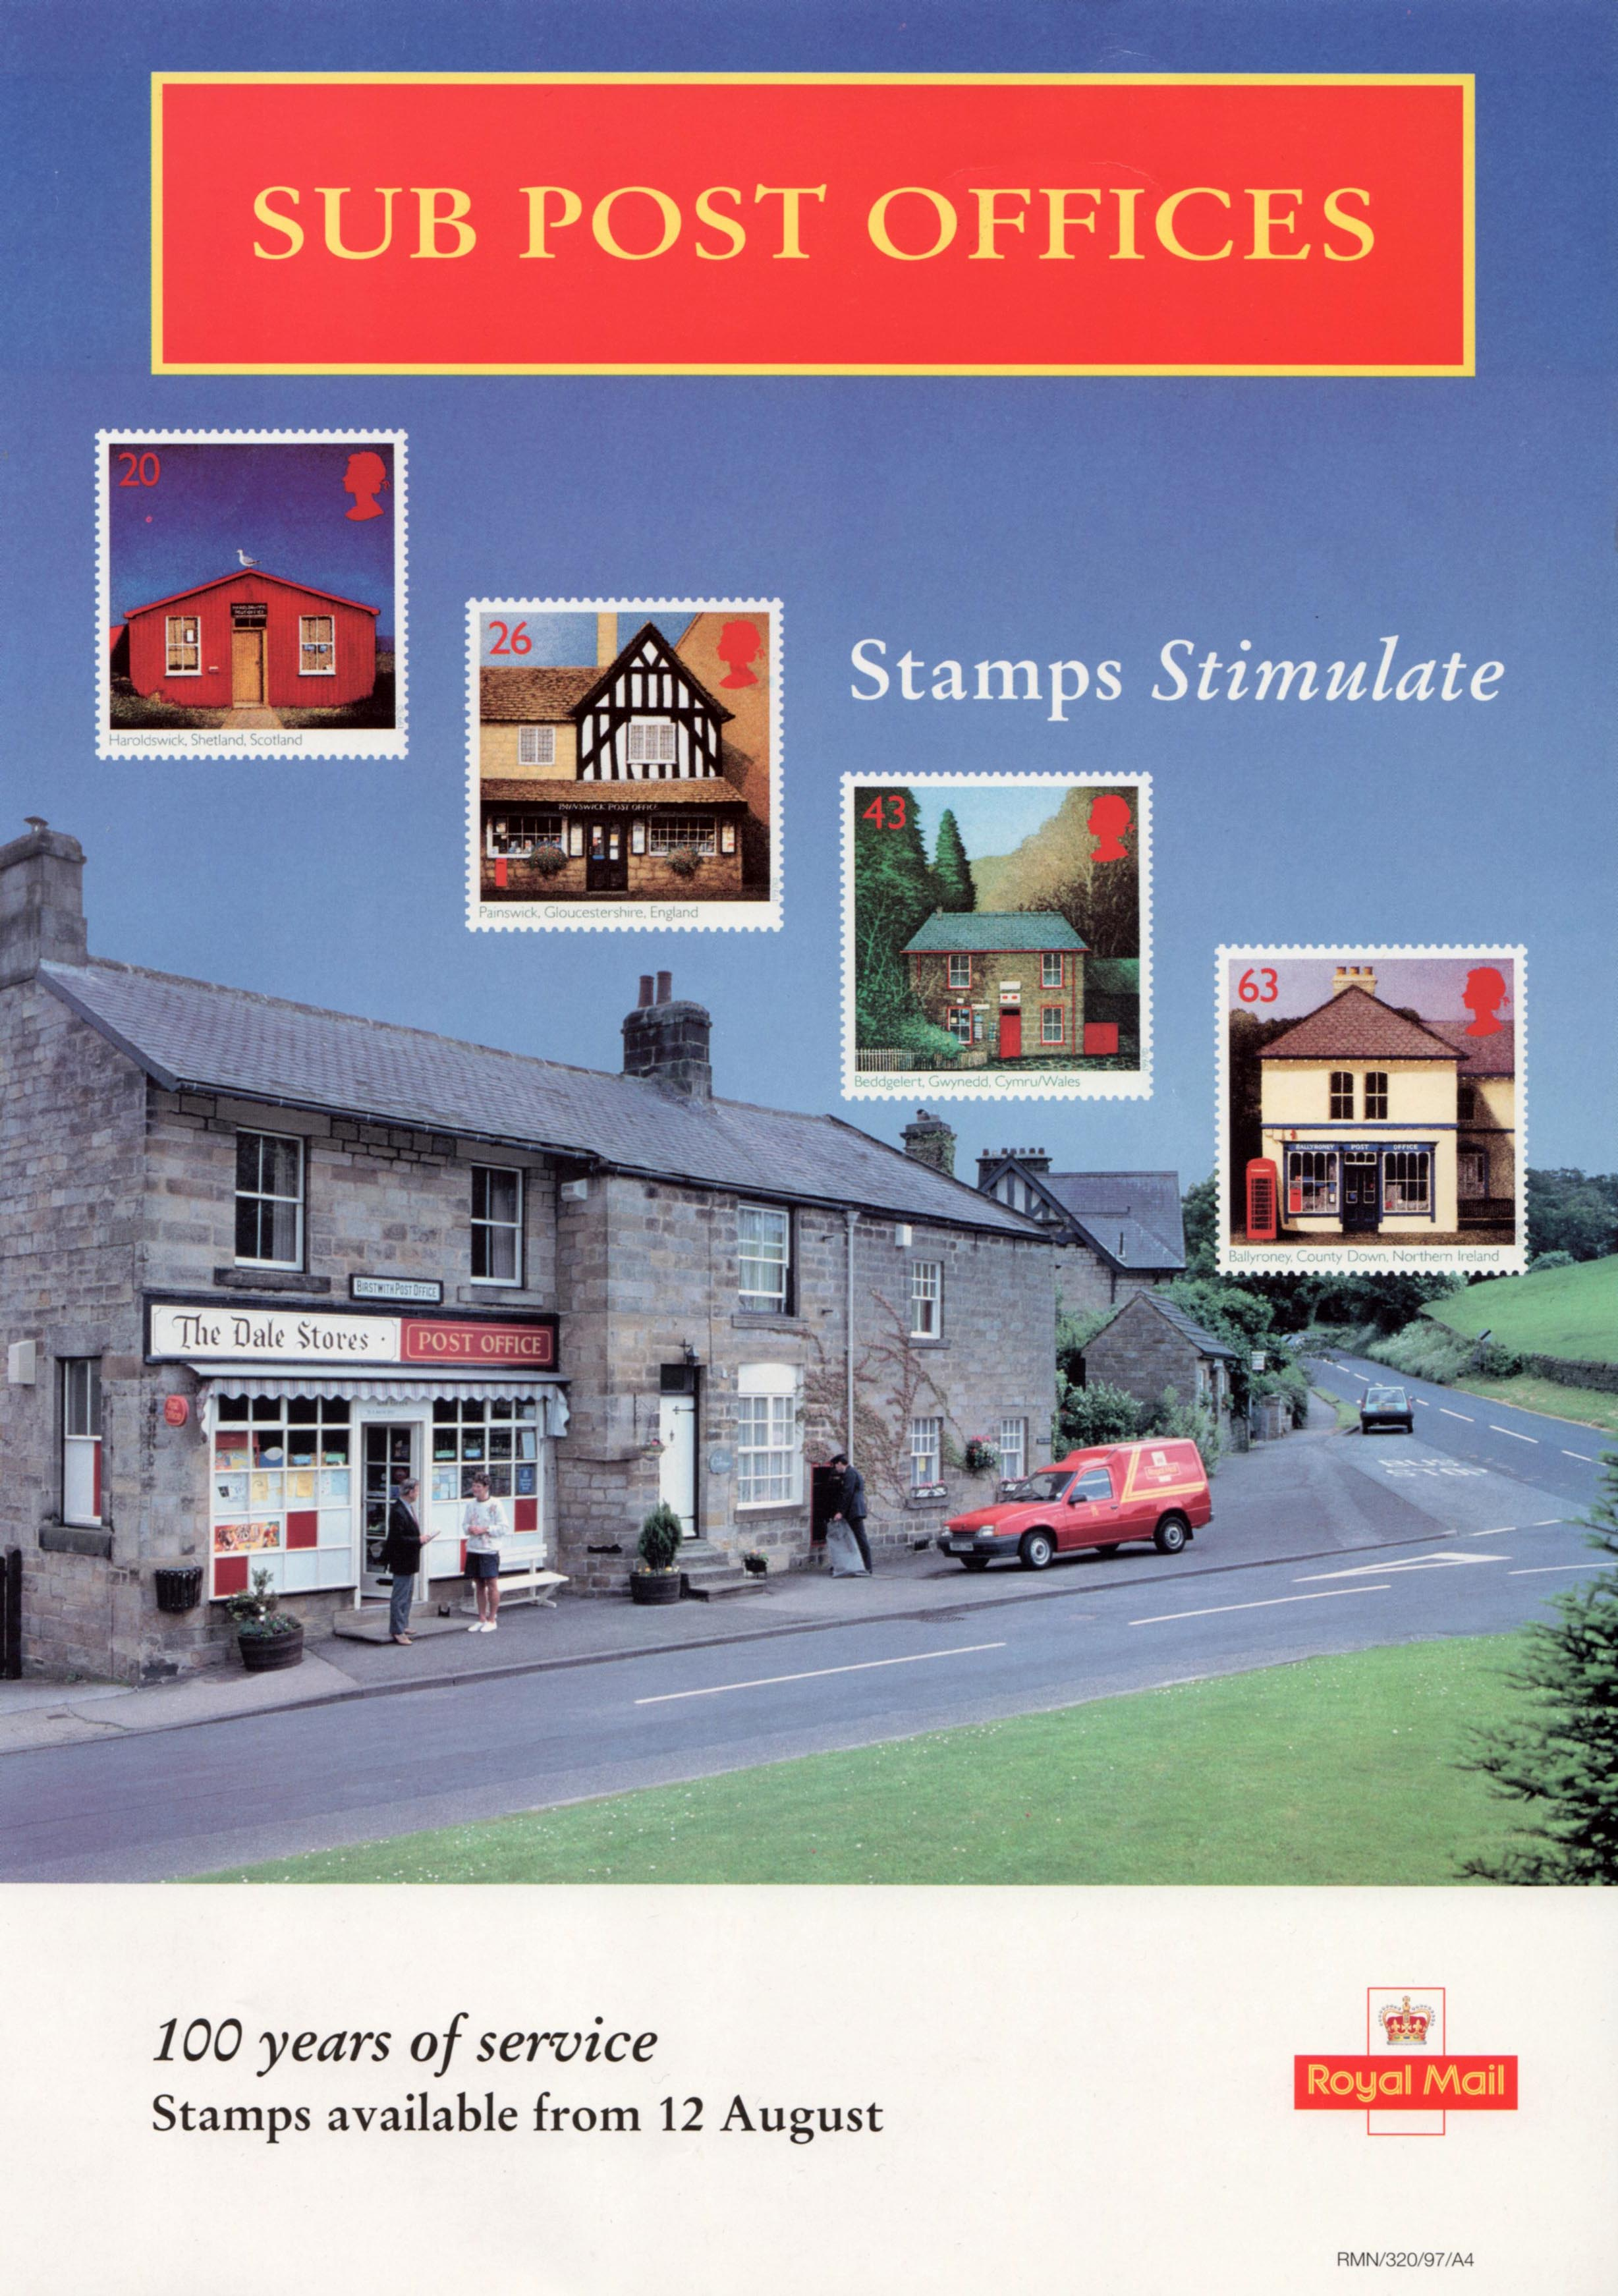 Royal Mall poster for the Sub-Post Offices stamp issue of August 12, 1997.